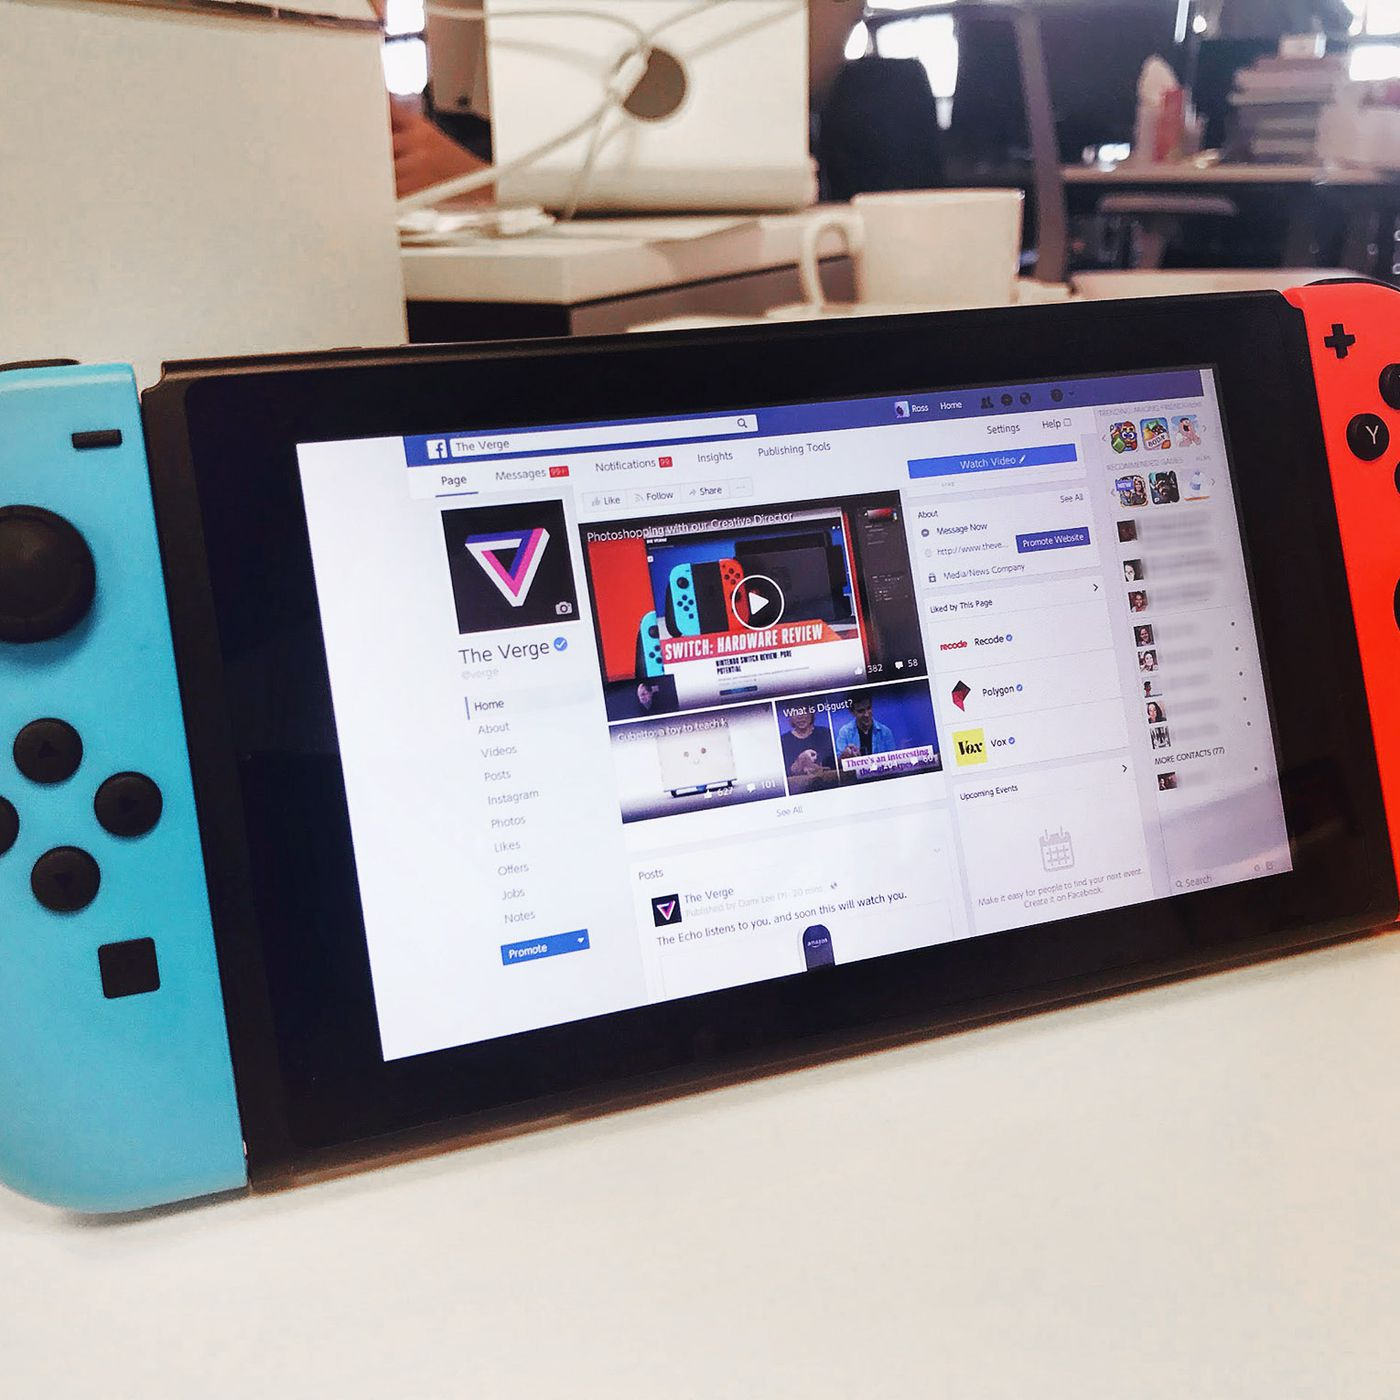 The Nintendo Switch has a secret browser, but you can't use it for